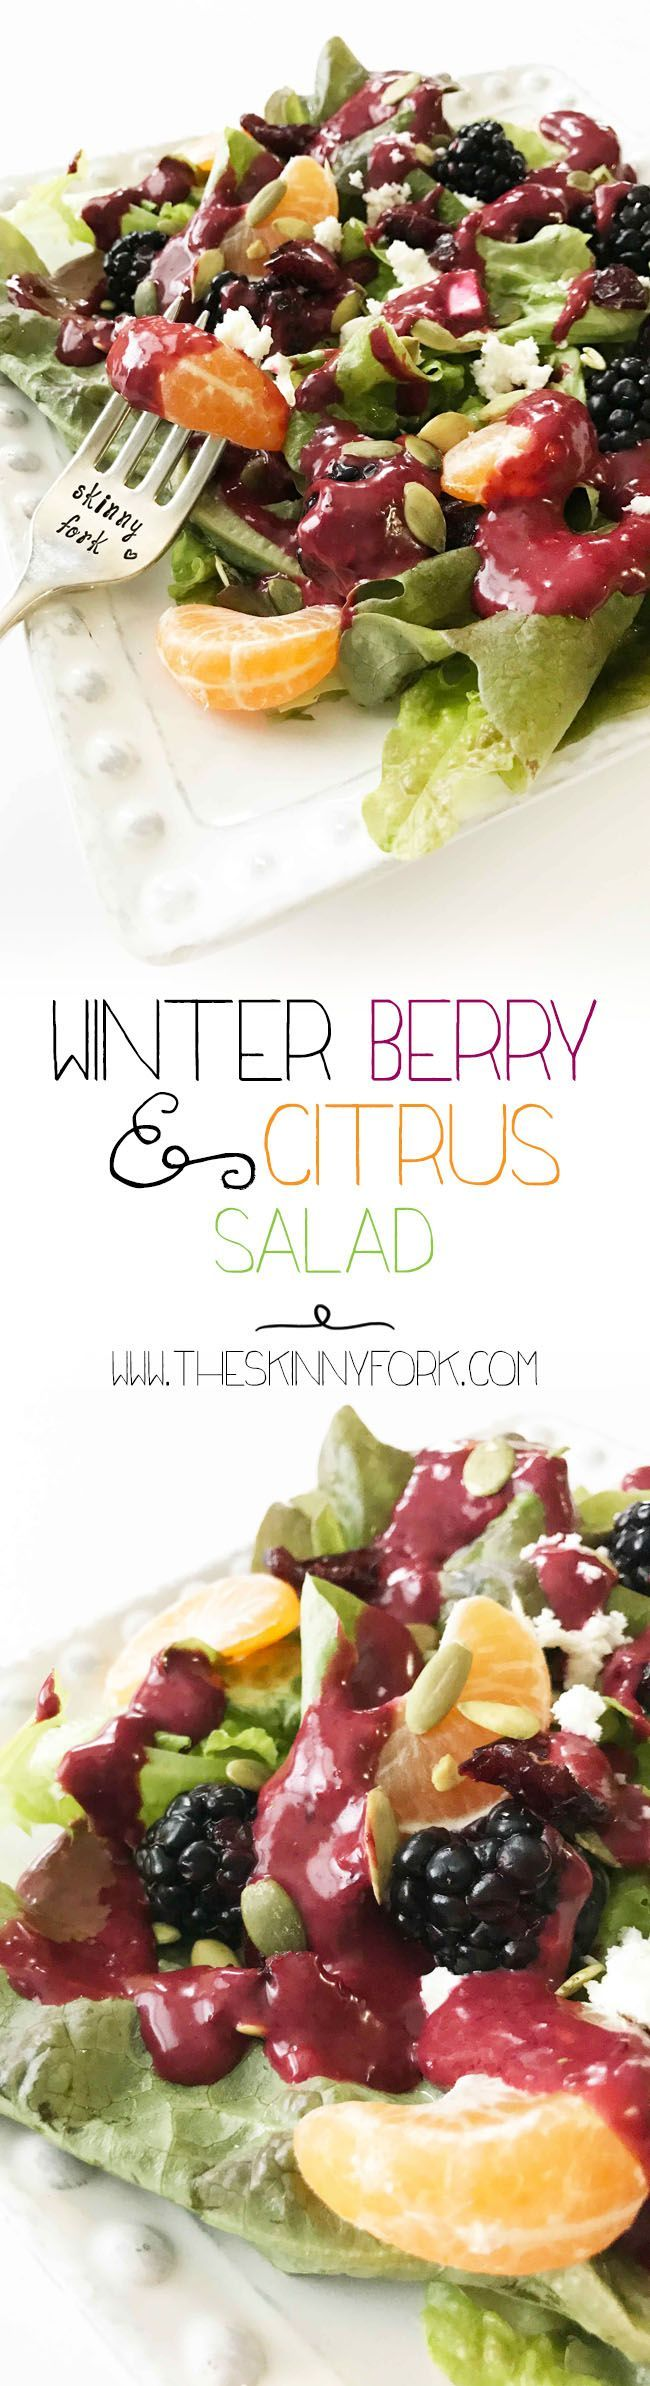 Who says you can't enjoy salad in the winter? ⛄ This Winter Berry & Citrus Salad with a homemade Black Berry Vinaigrette will hit the spot! It's loaded up with winter fruits and greens that are sure to impress. Serve it with some grilled chicken, steak or even a hearty bowl of soup! http://TheSkinnyFork.com   Skinny & Healthy Recipes